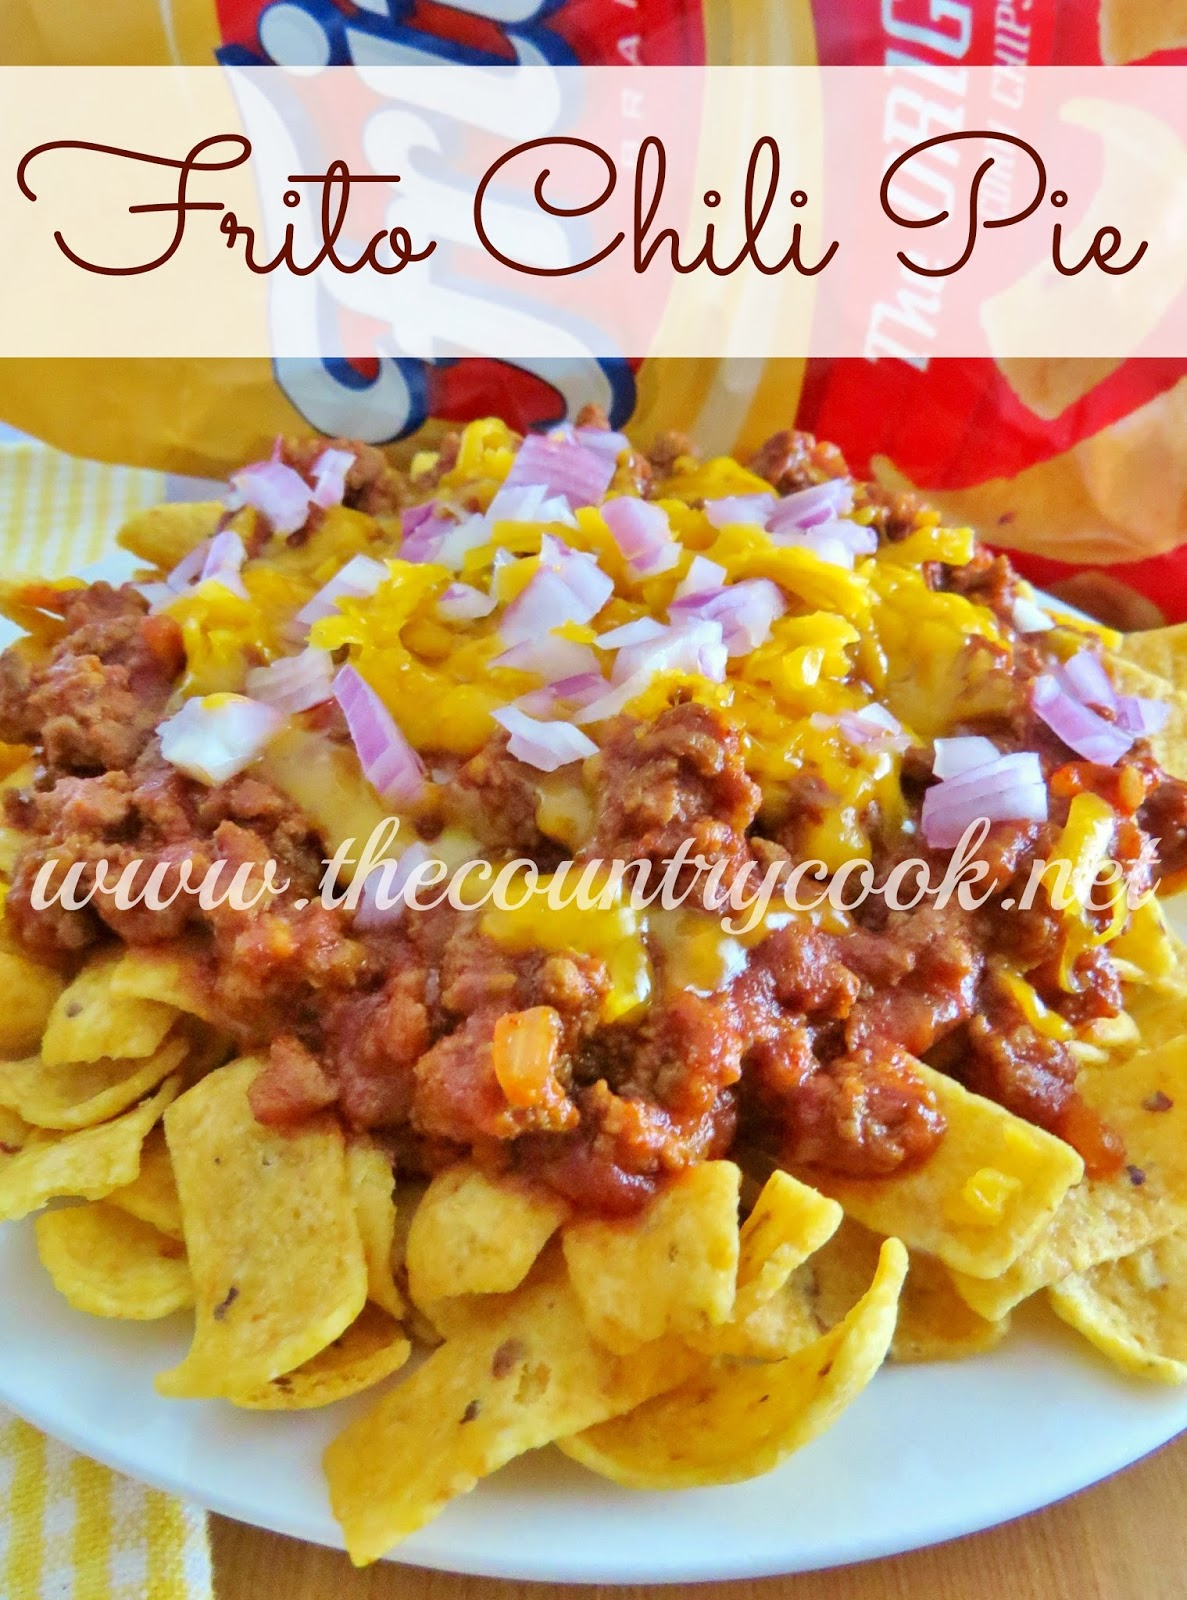 The Country Cook: Frito Chili Pie